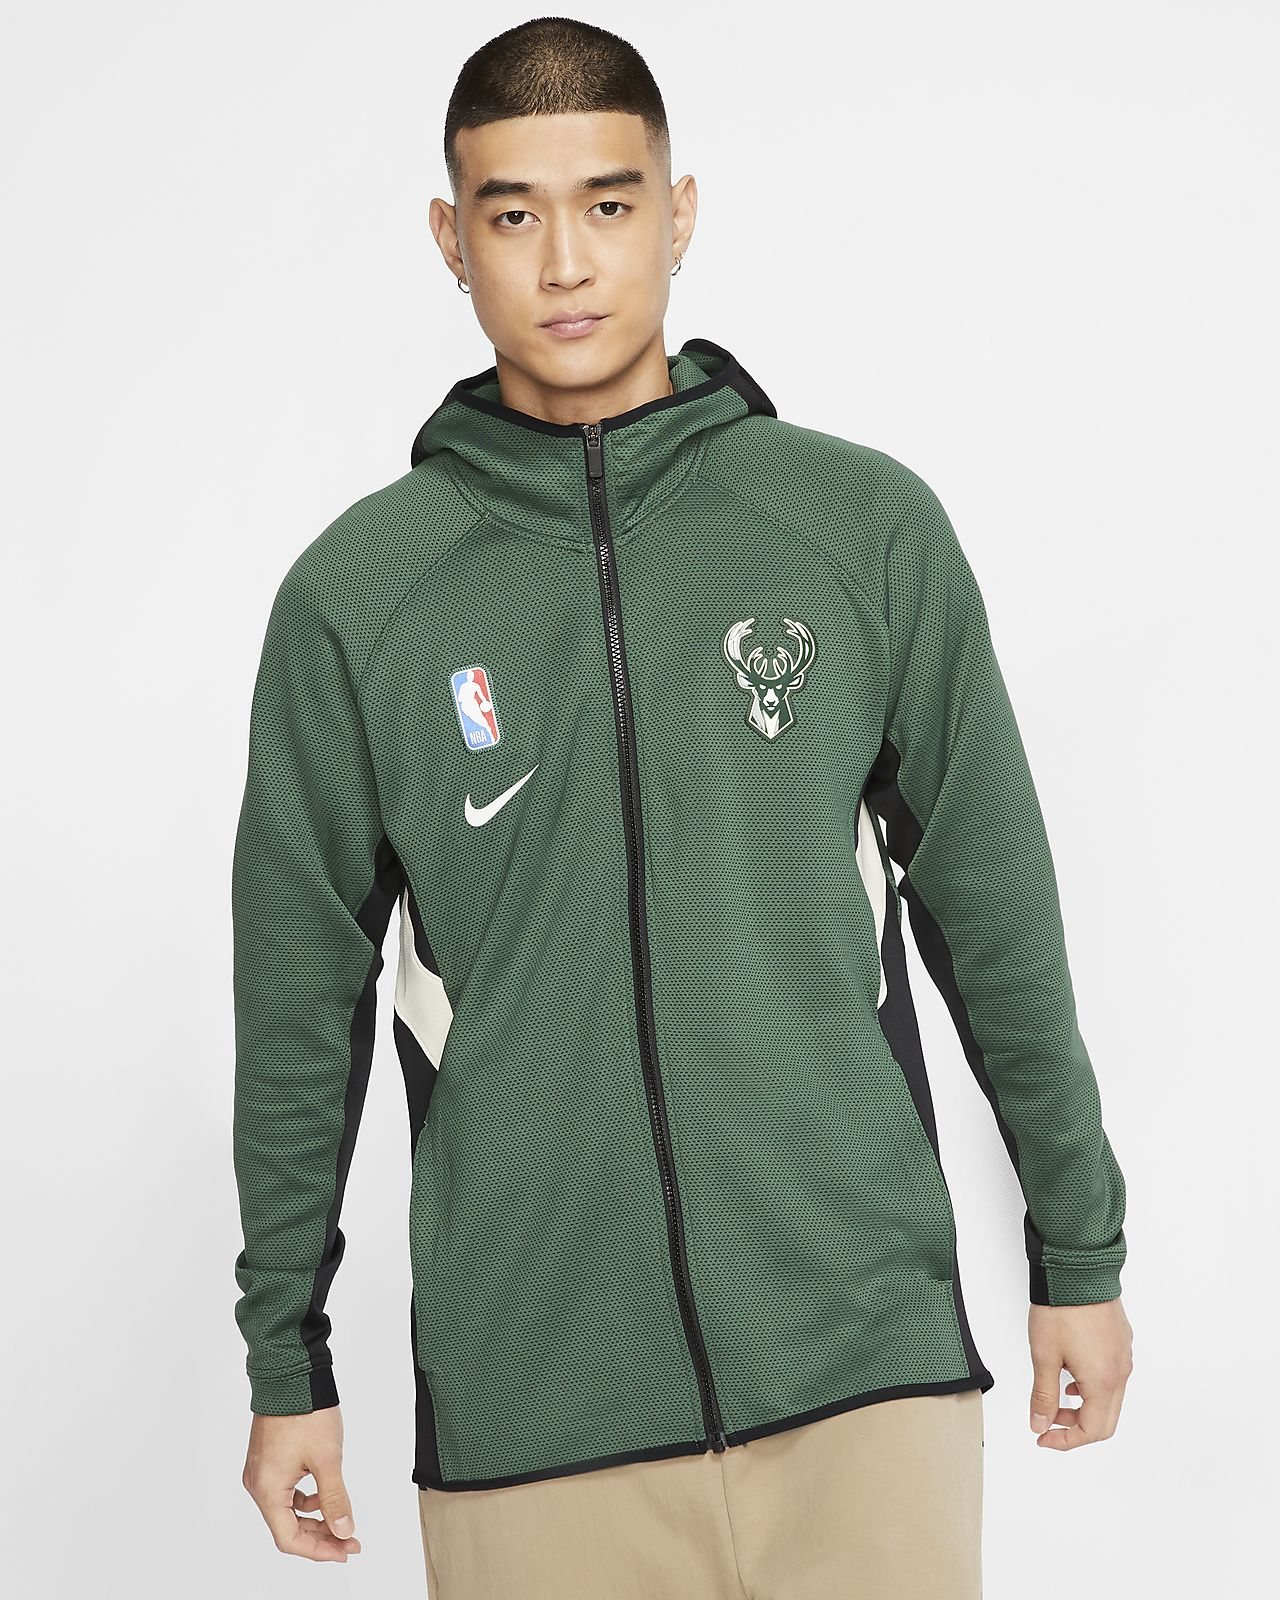 Milwaukee Bucks Nike Therma Flex Showtime Men's NBA Hoodie